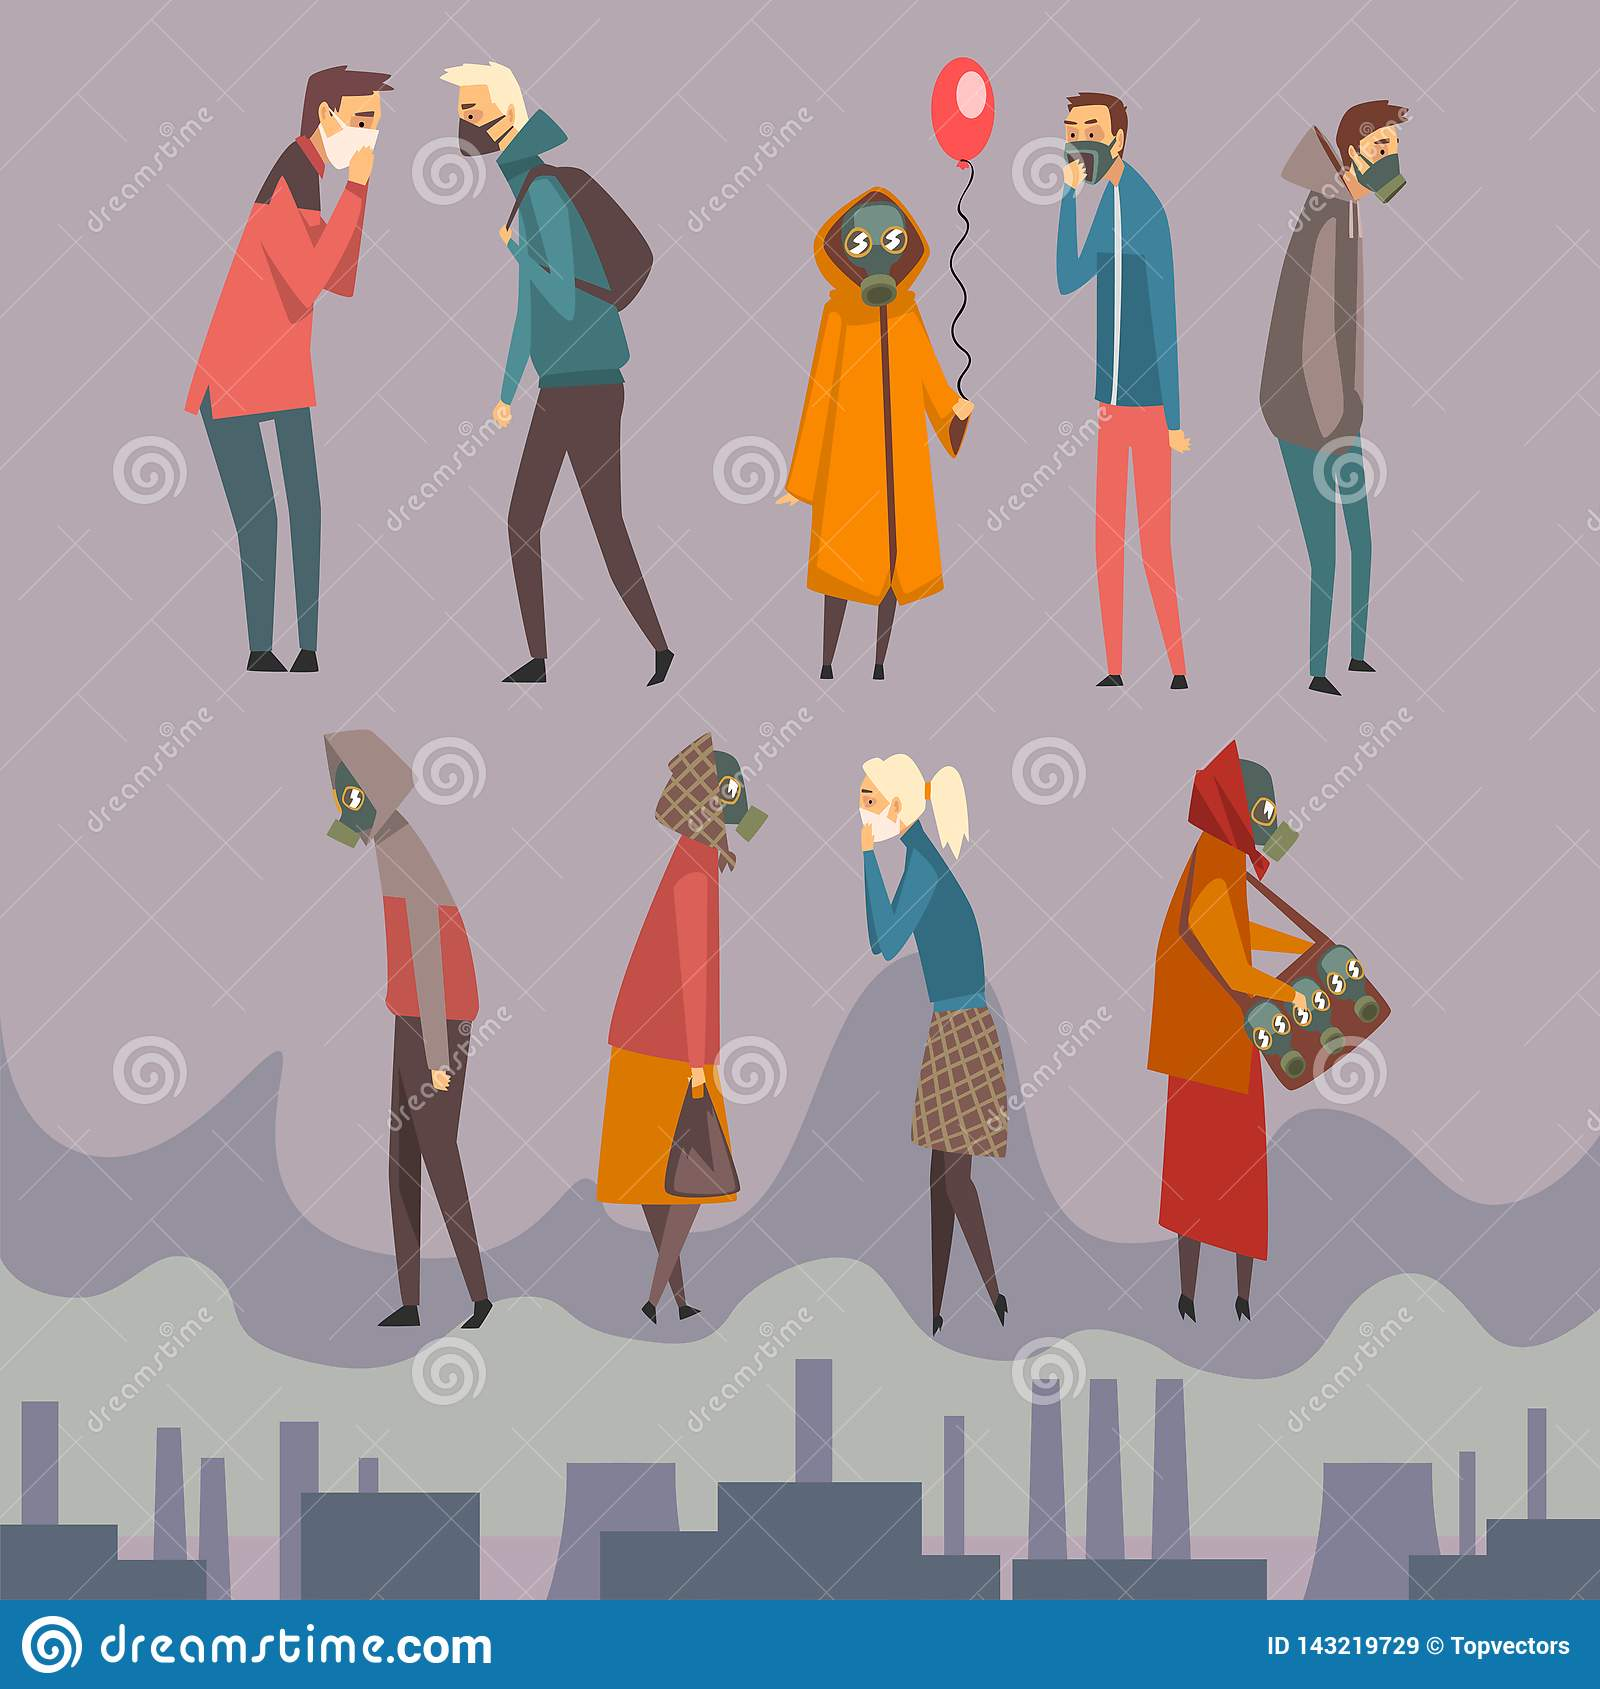 Unhappy Men, Women and Children Wearing Protective Masks Walking in City, People Suffering from Air Pollution